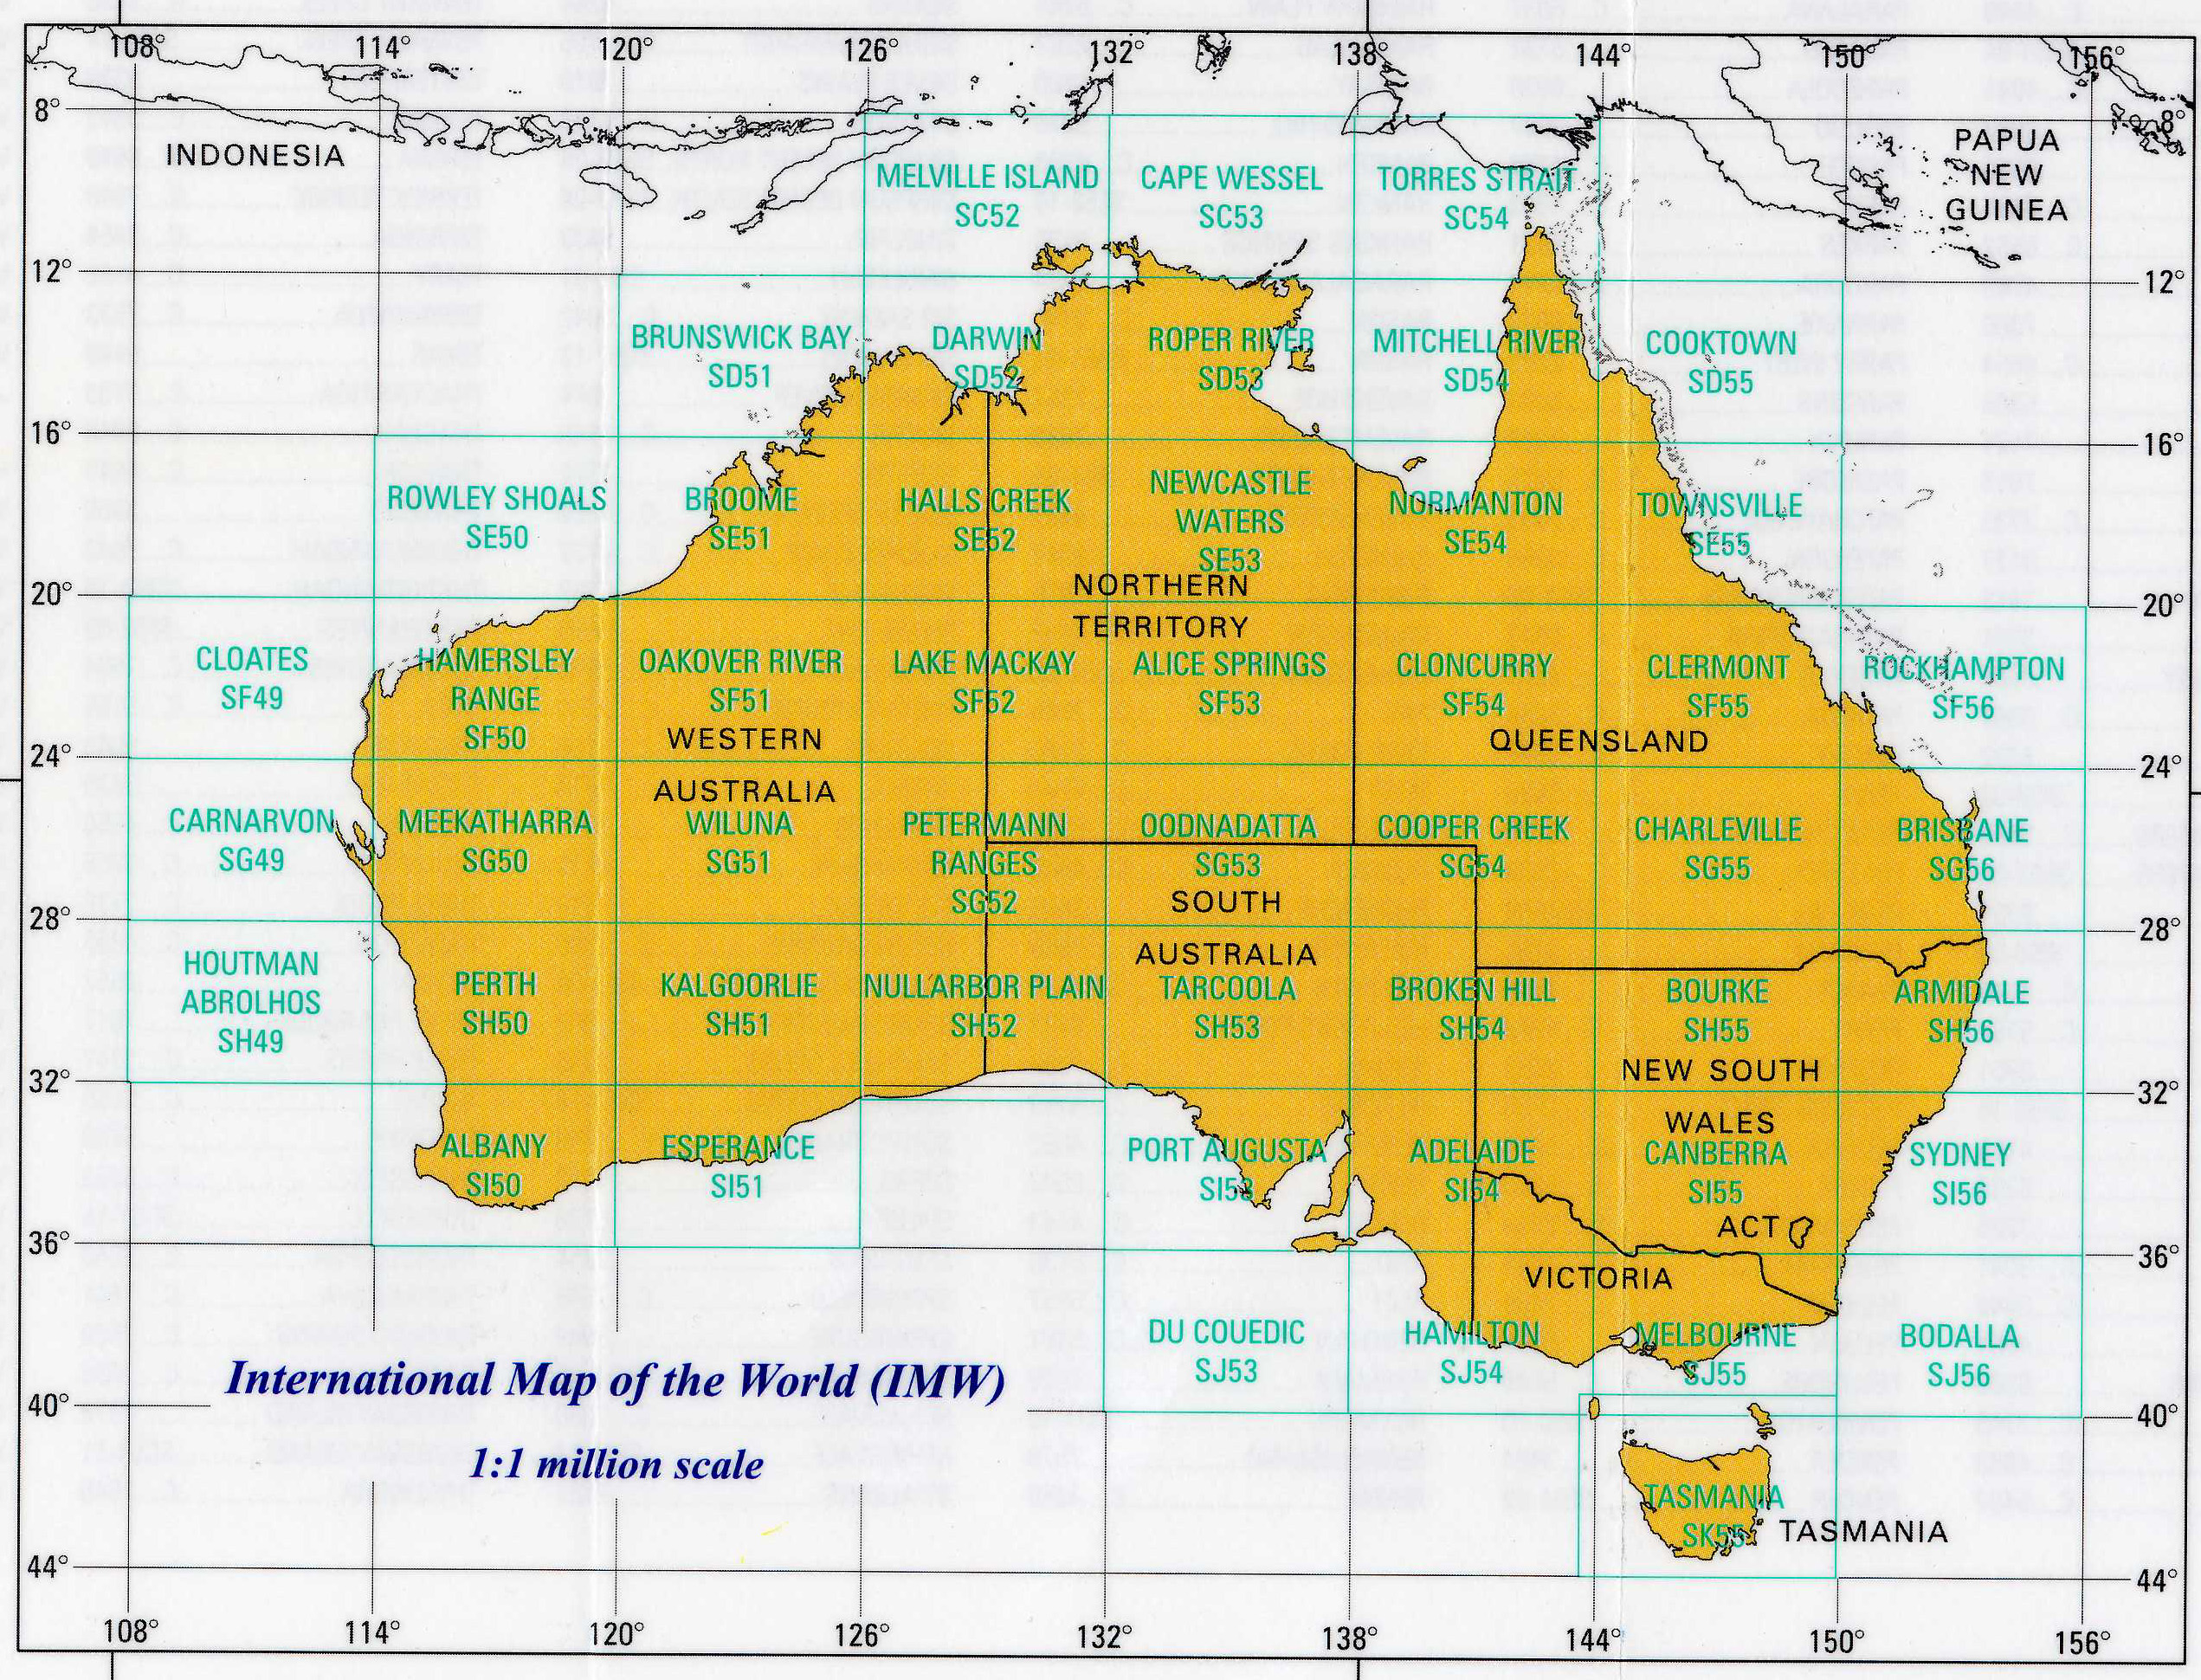 Index for the IMW maps which cover Australia